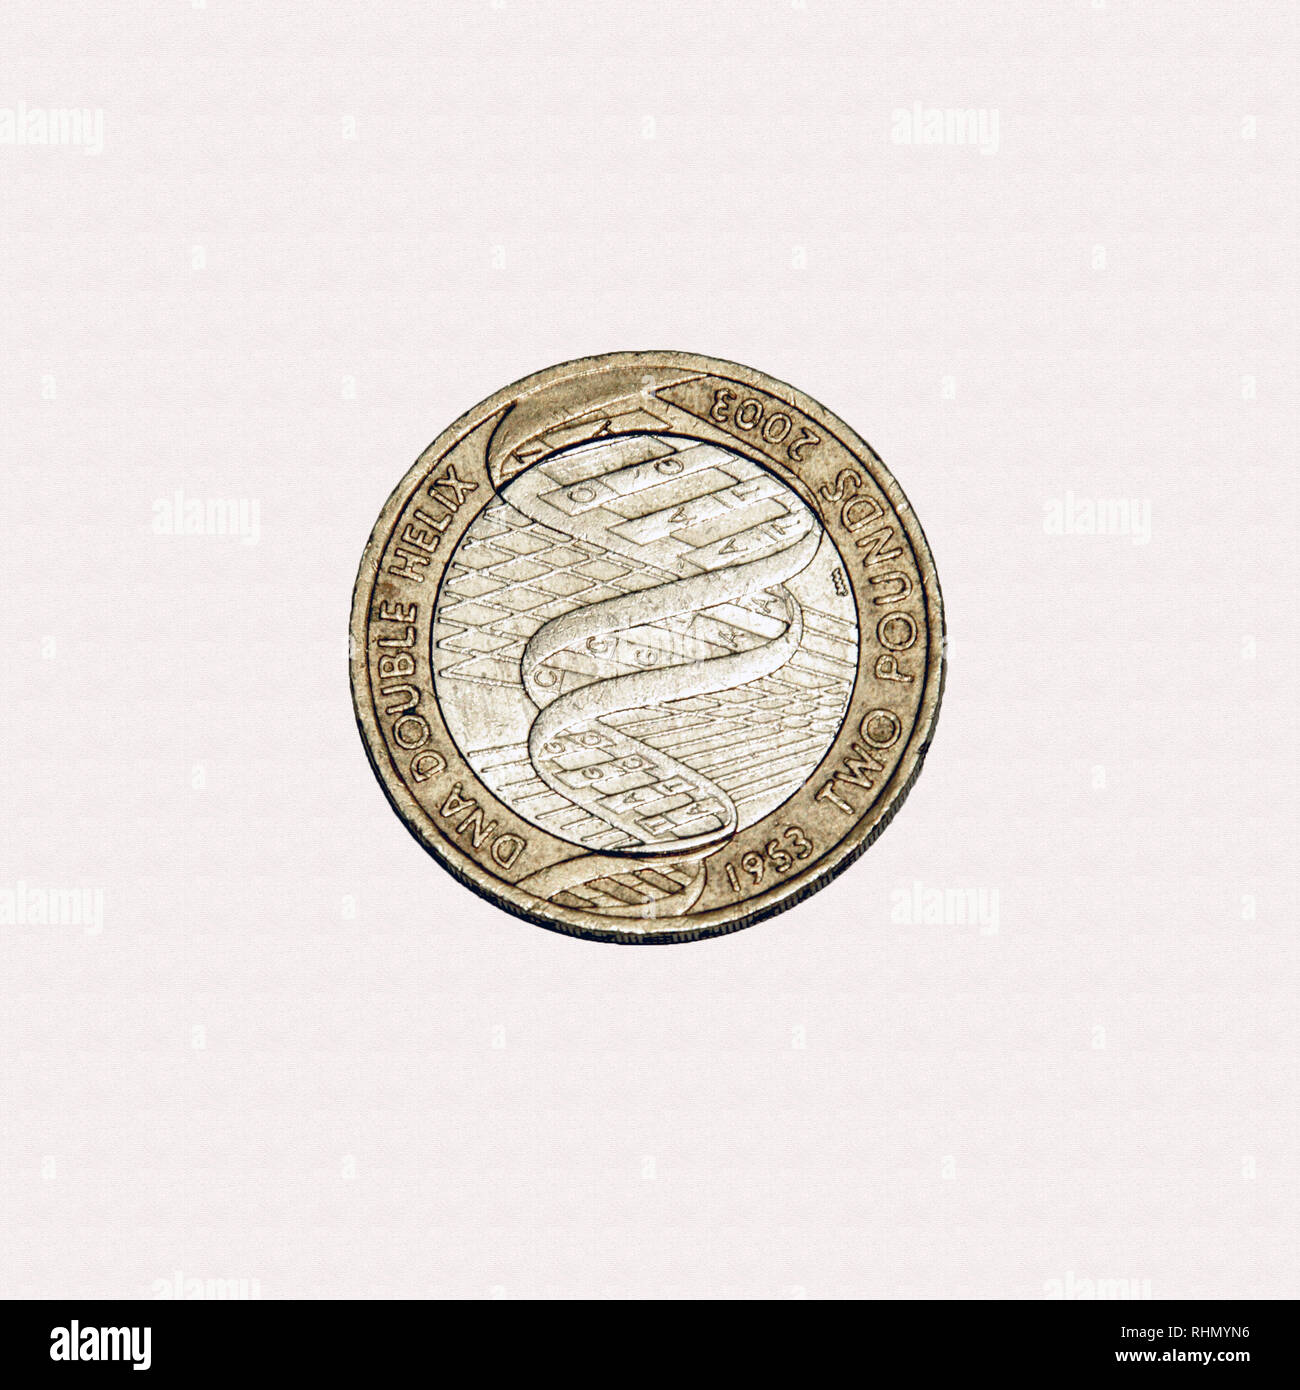 Limited edition British £2 coin commemorating the discovery of DNA in 1953 - Stock Image